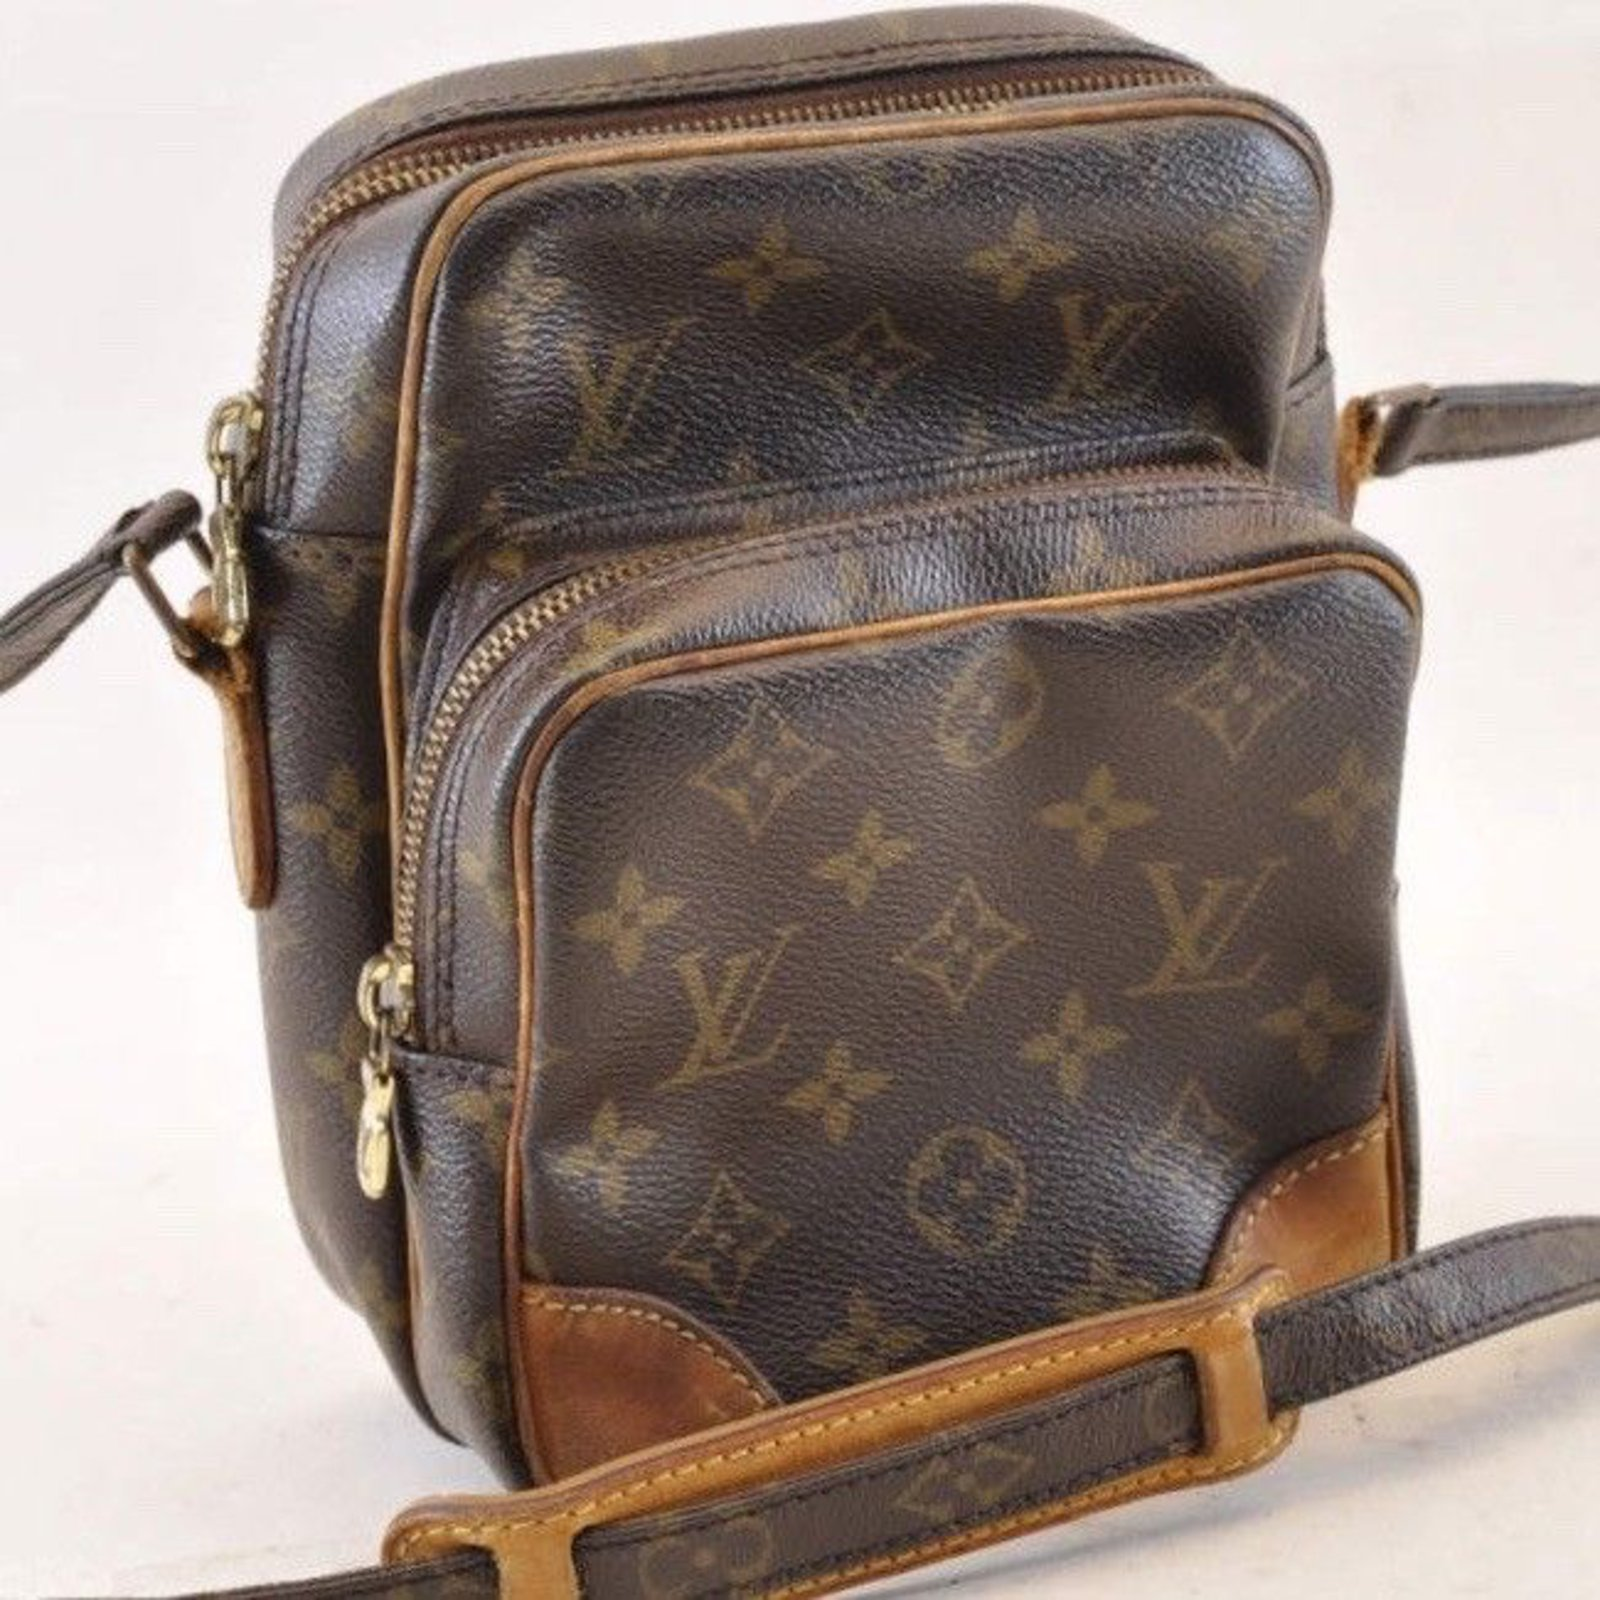 ec0069062419 Louis Vuitton Louis Vuitton Monogram Amazon Handbags Cloth Brown ref.103627